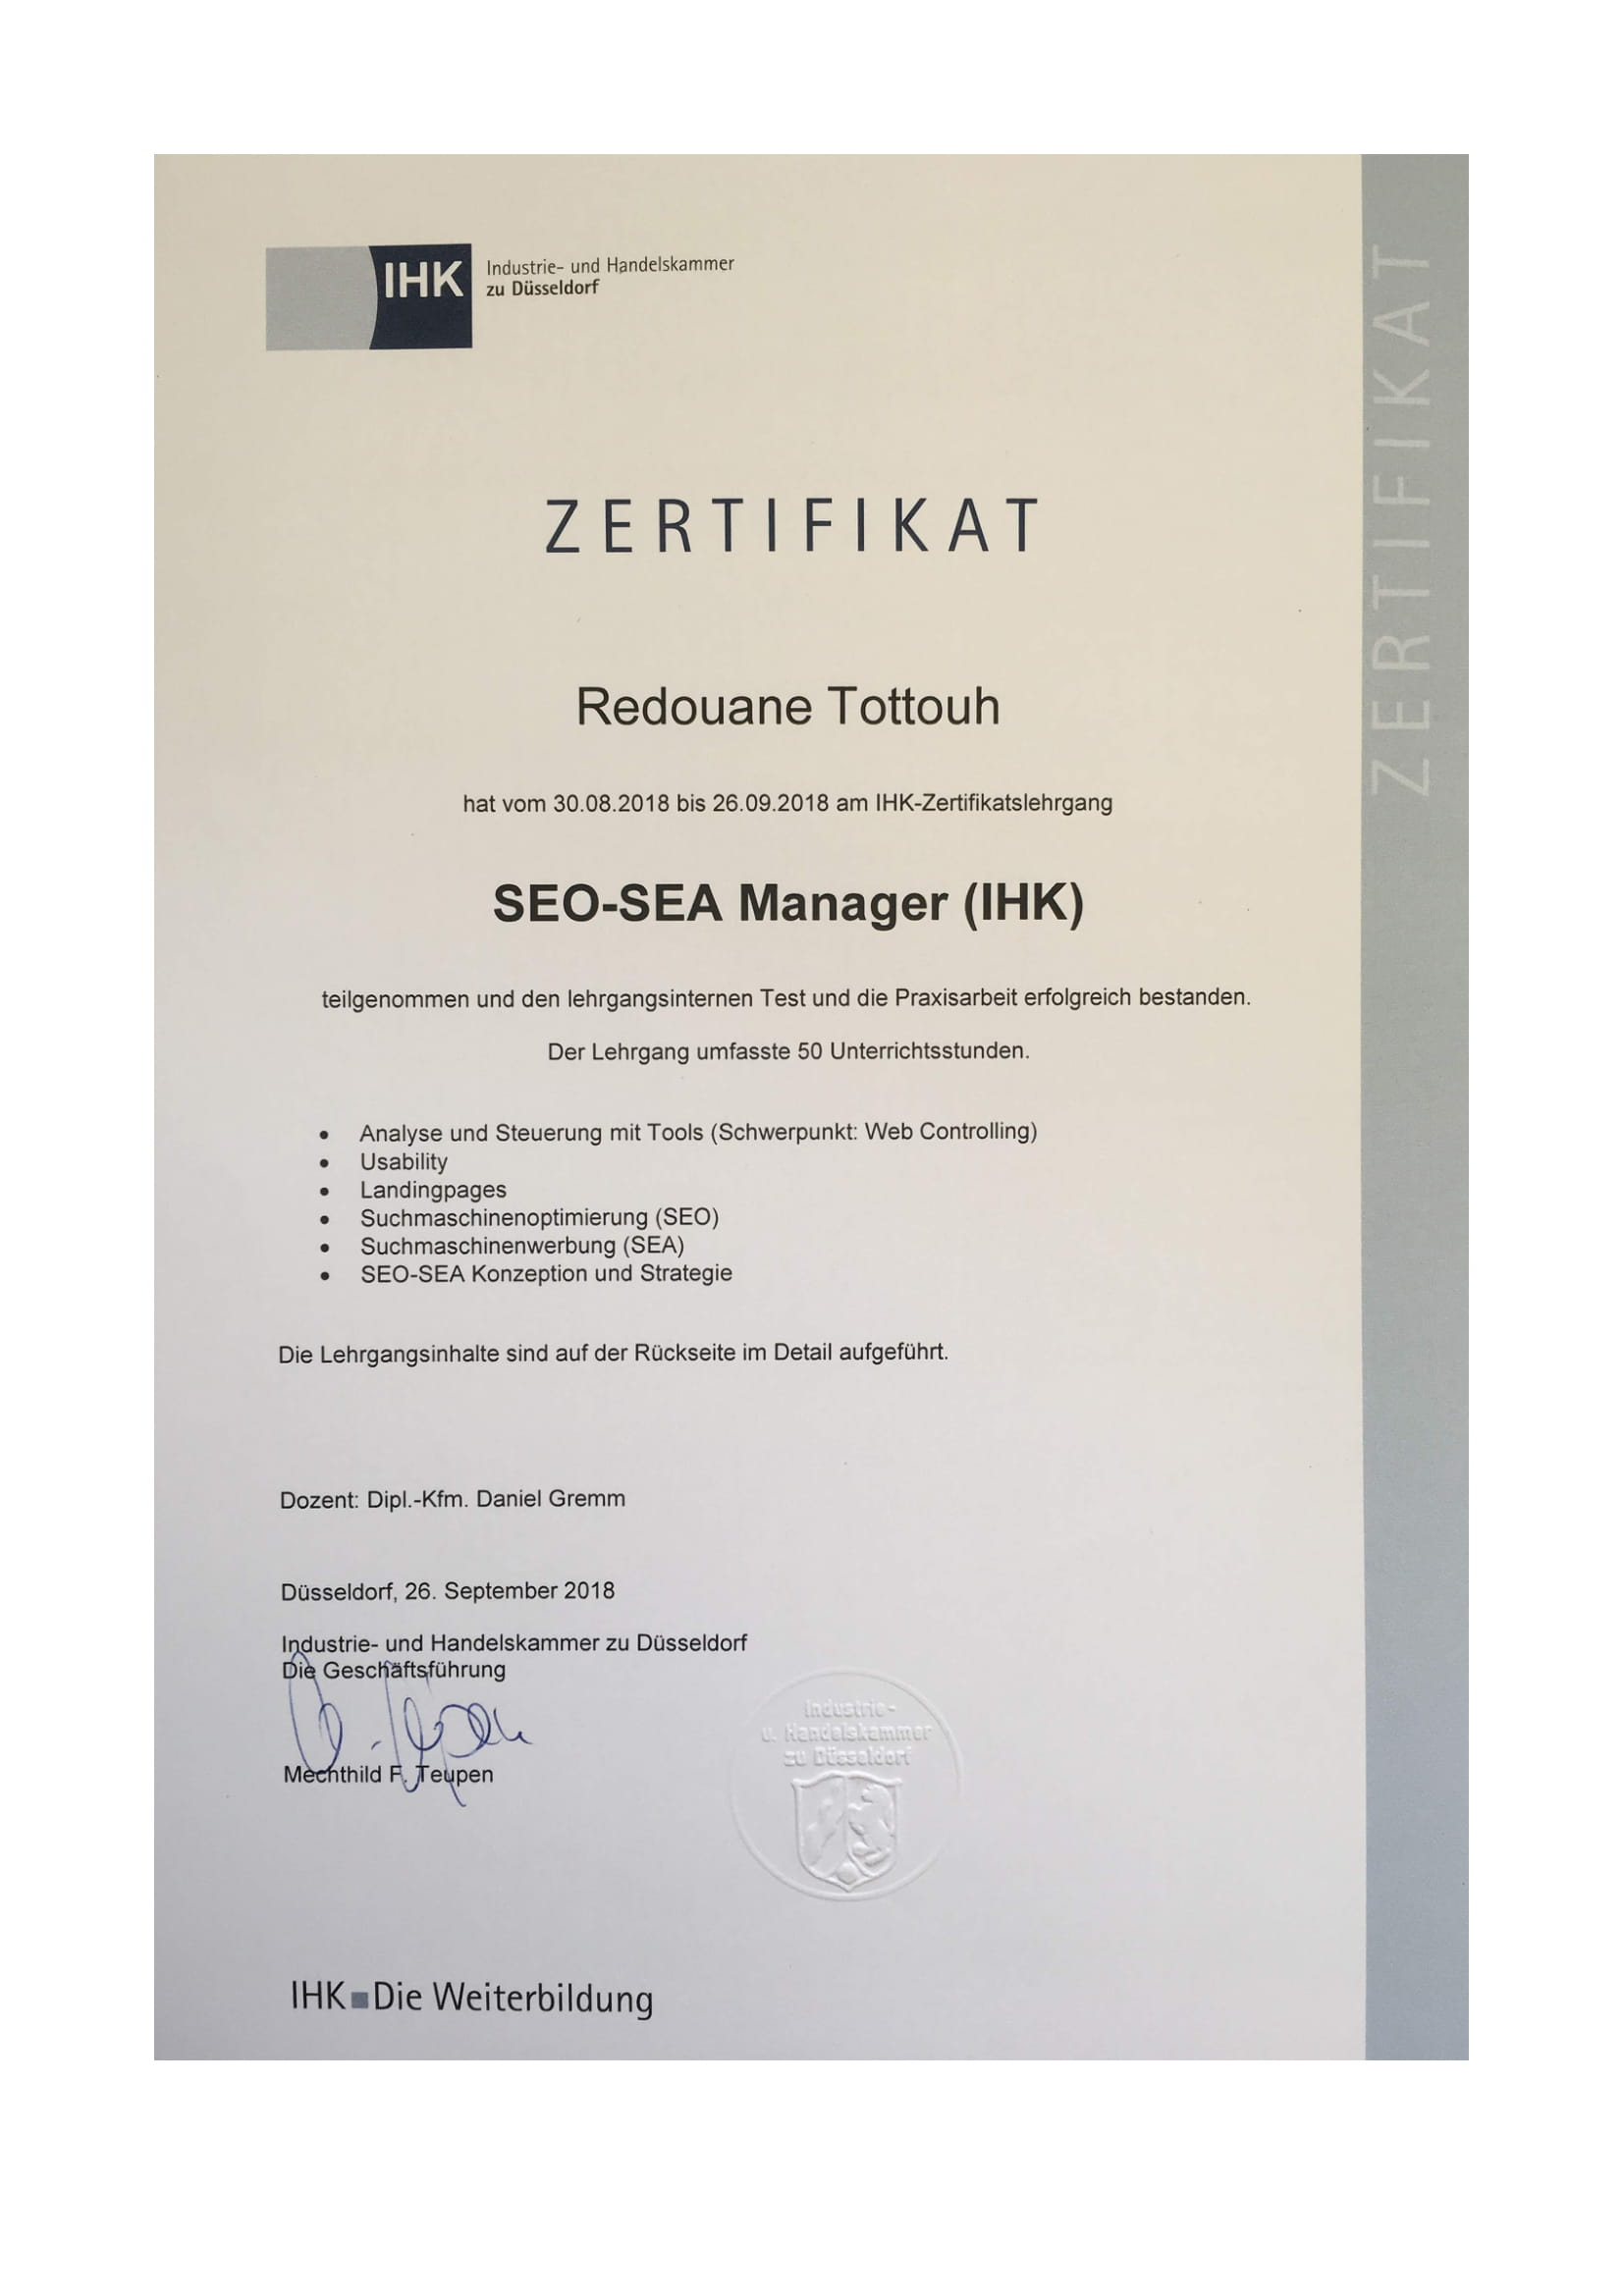 IHK Zertifikat - SEO / SEA Manager